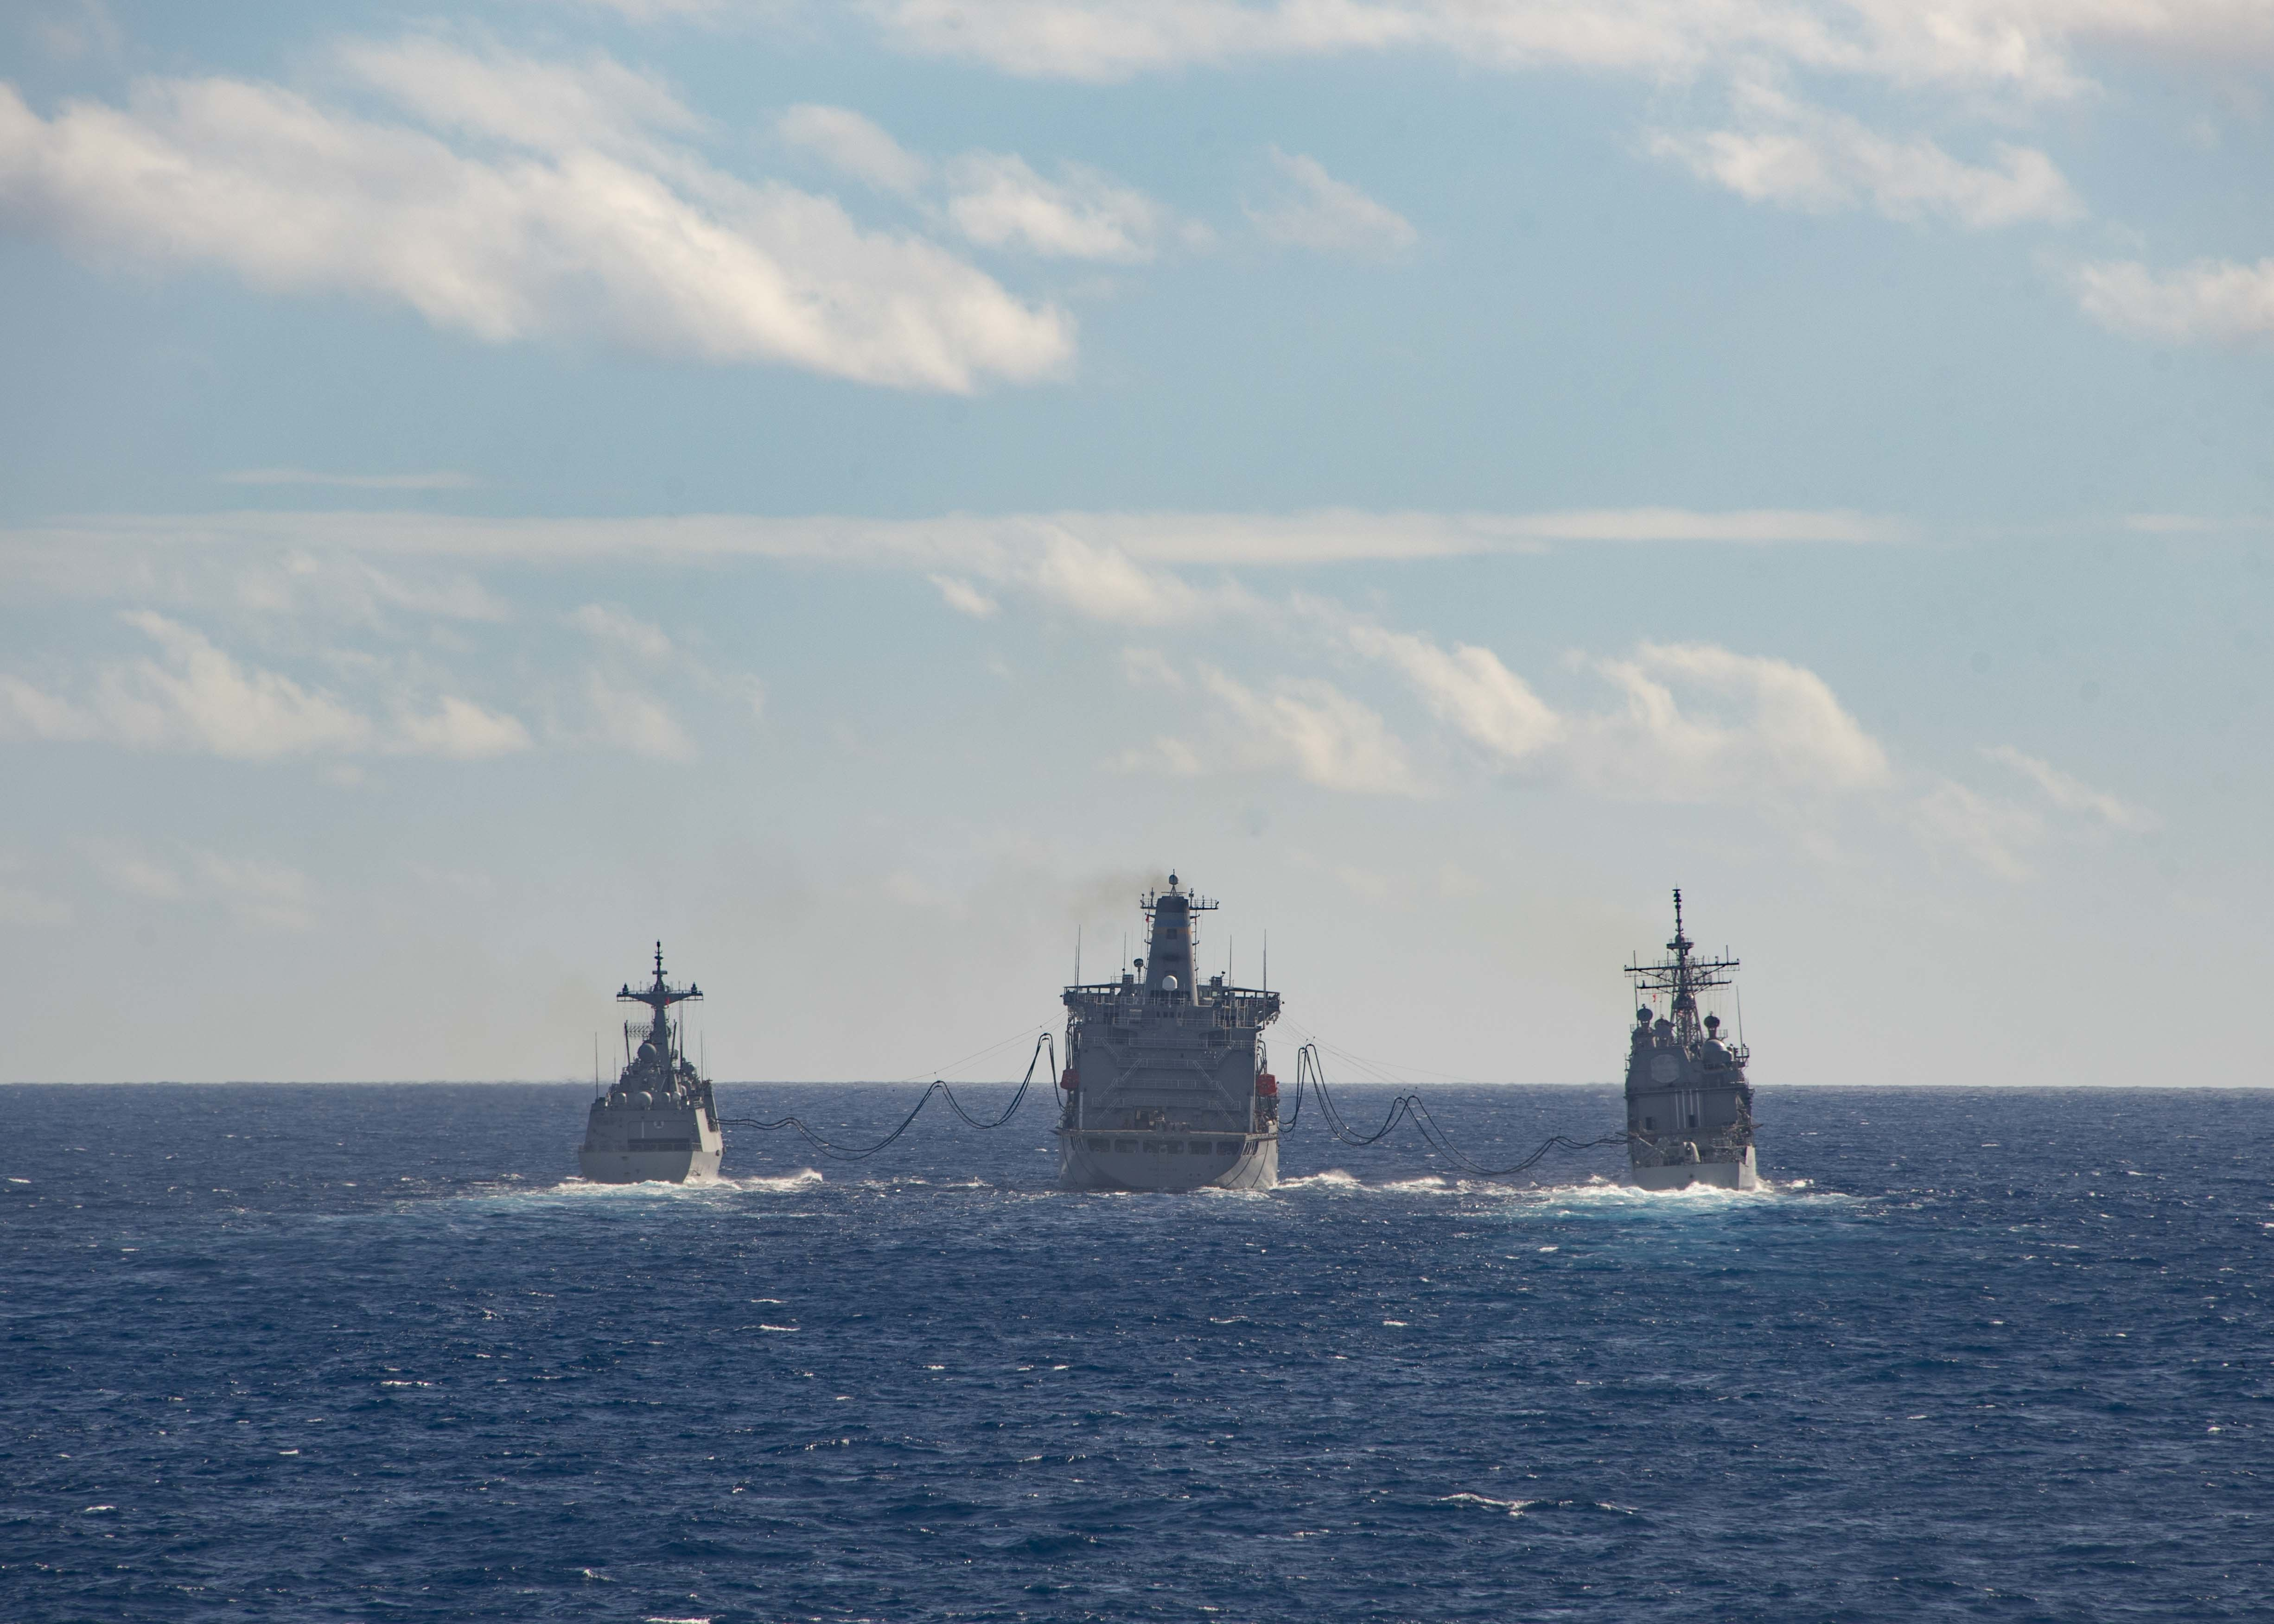 Republic of Korea Navy ship ROKS Chungmugong Yi Sun-sin (DDH 975) and U.S. Navy Ticonderoga-class guided-missile cruiser USS Lake Erie (CG 70) conduct a replenishment-at-sea (RAS) with U.S. Navy fleet replenishment oiler USNS Henry J. Kaiser (T-AO 187) during Exercise Rim of the Pacific (RIMPAC) 2020.